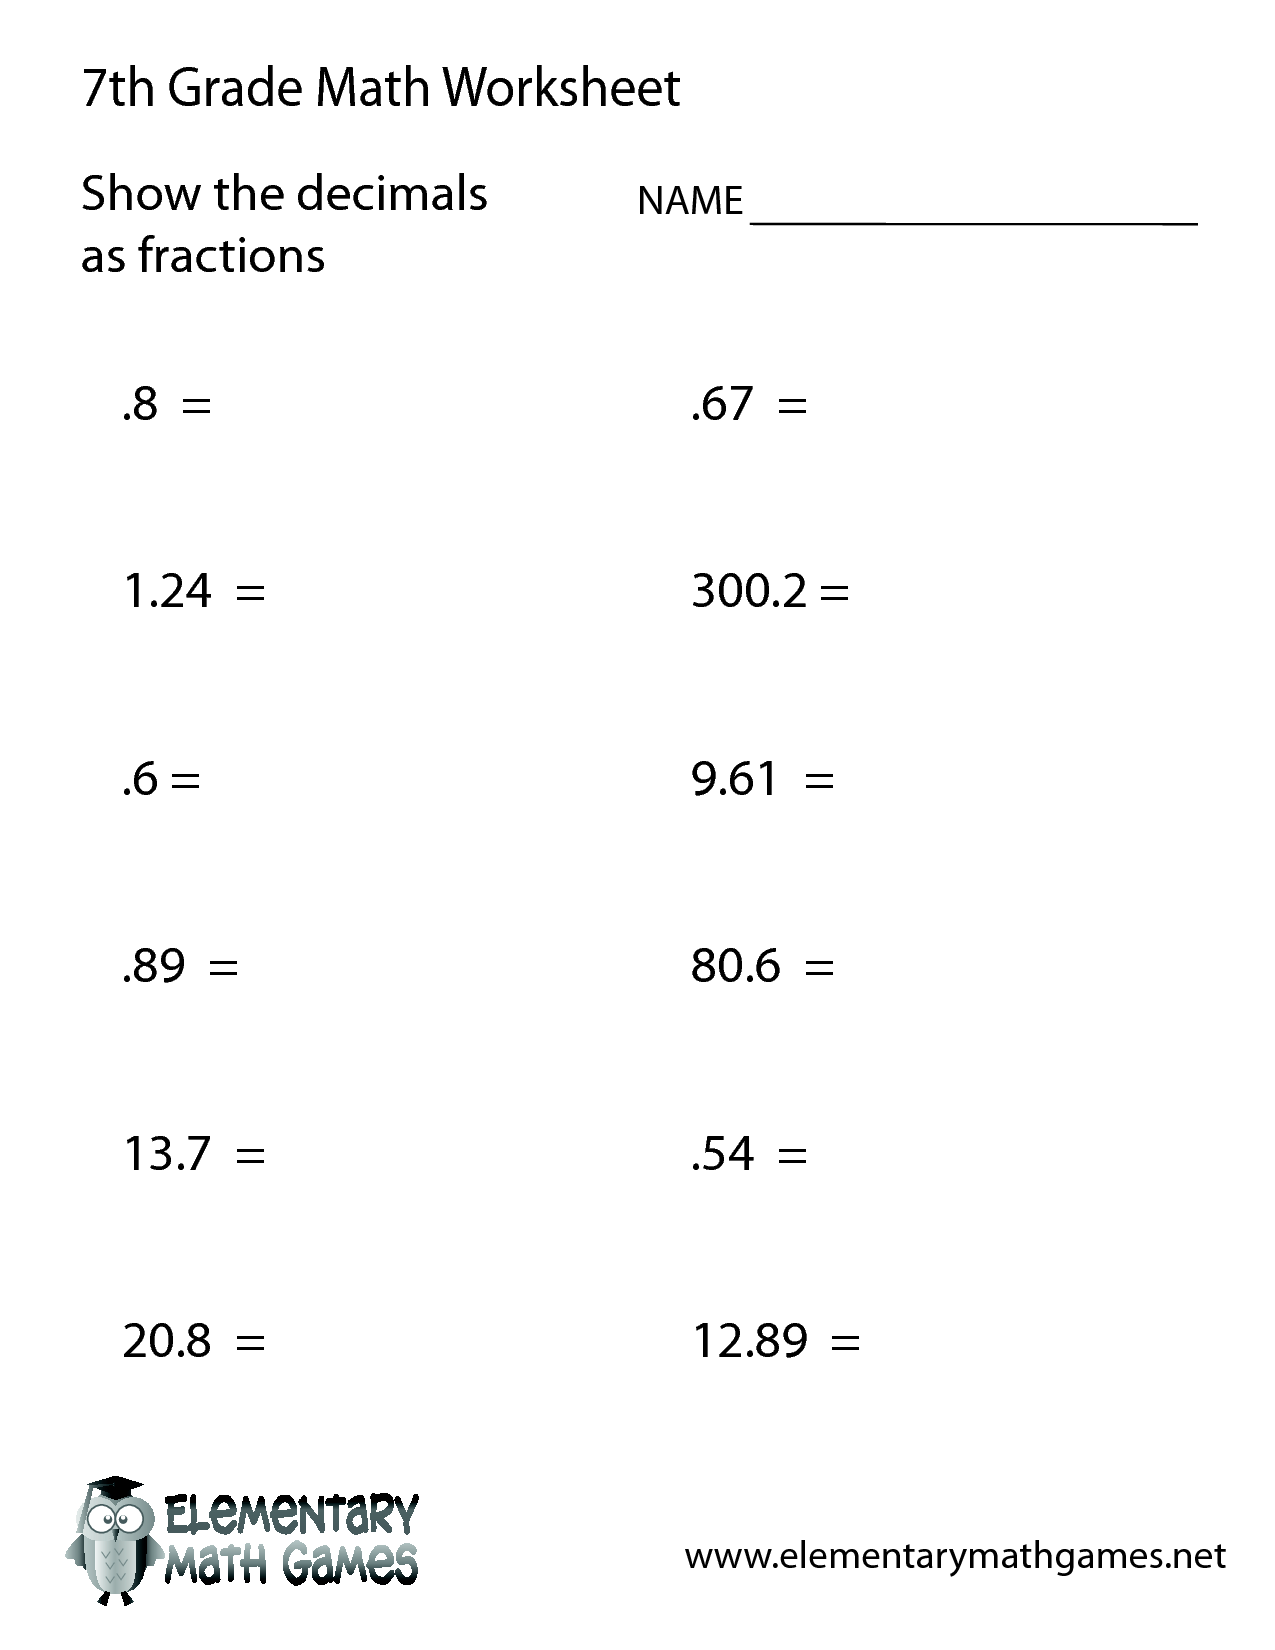 Fractions Worksheet For 7th Grade